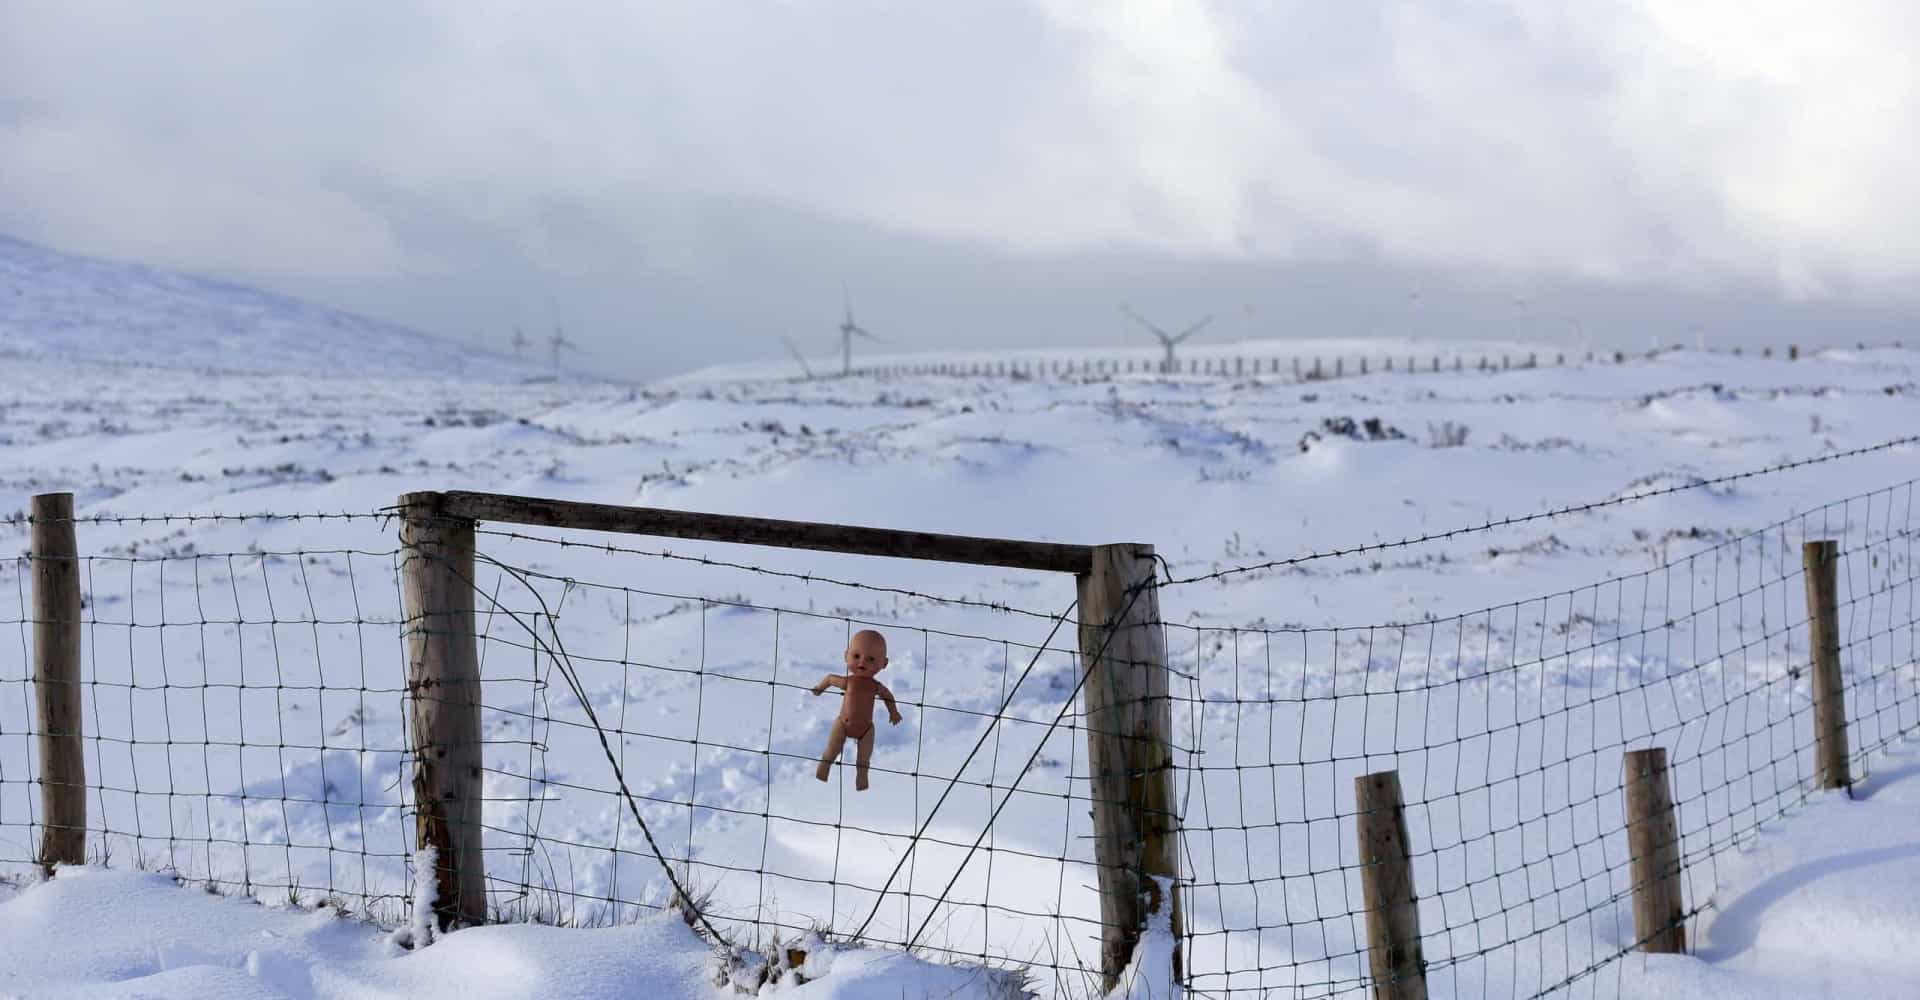 Haunting images of abandoned, lost, and left-behind dolls